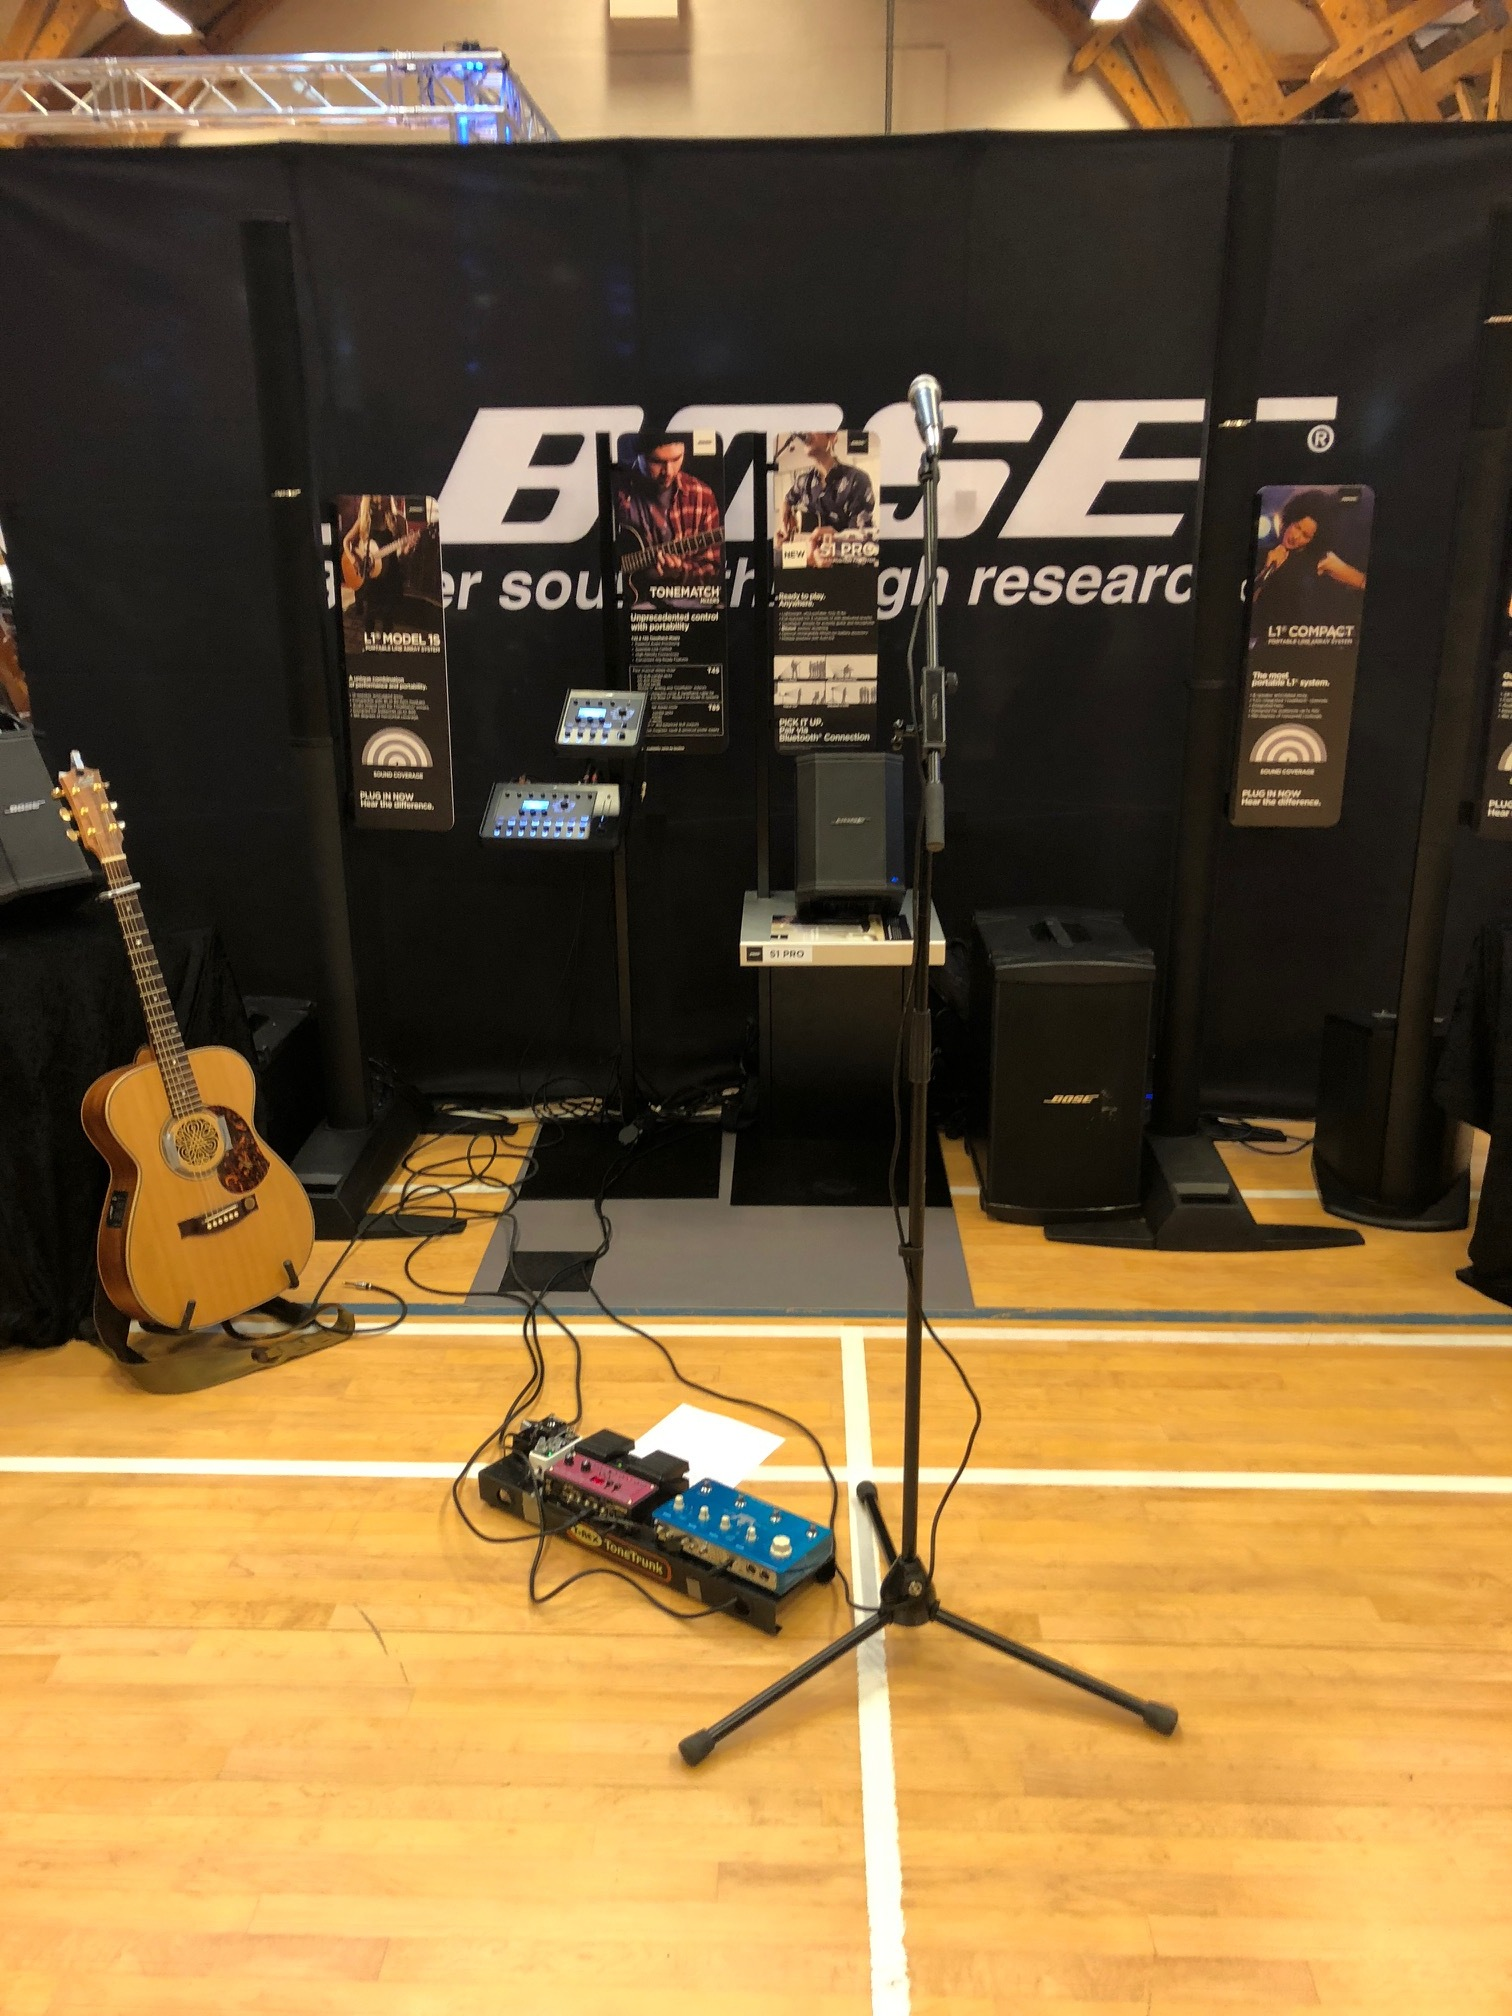 Demoing for Bose at the Copenhagen guitar show….